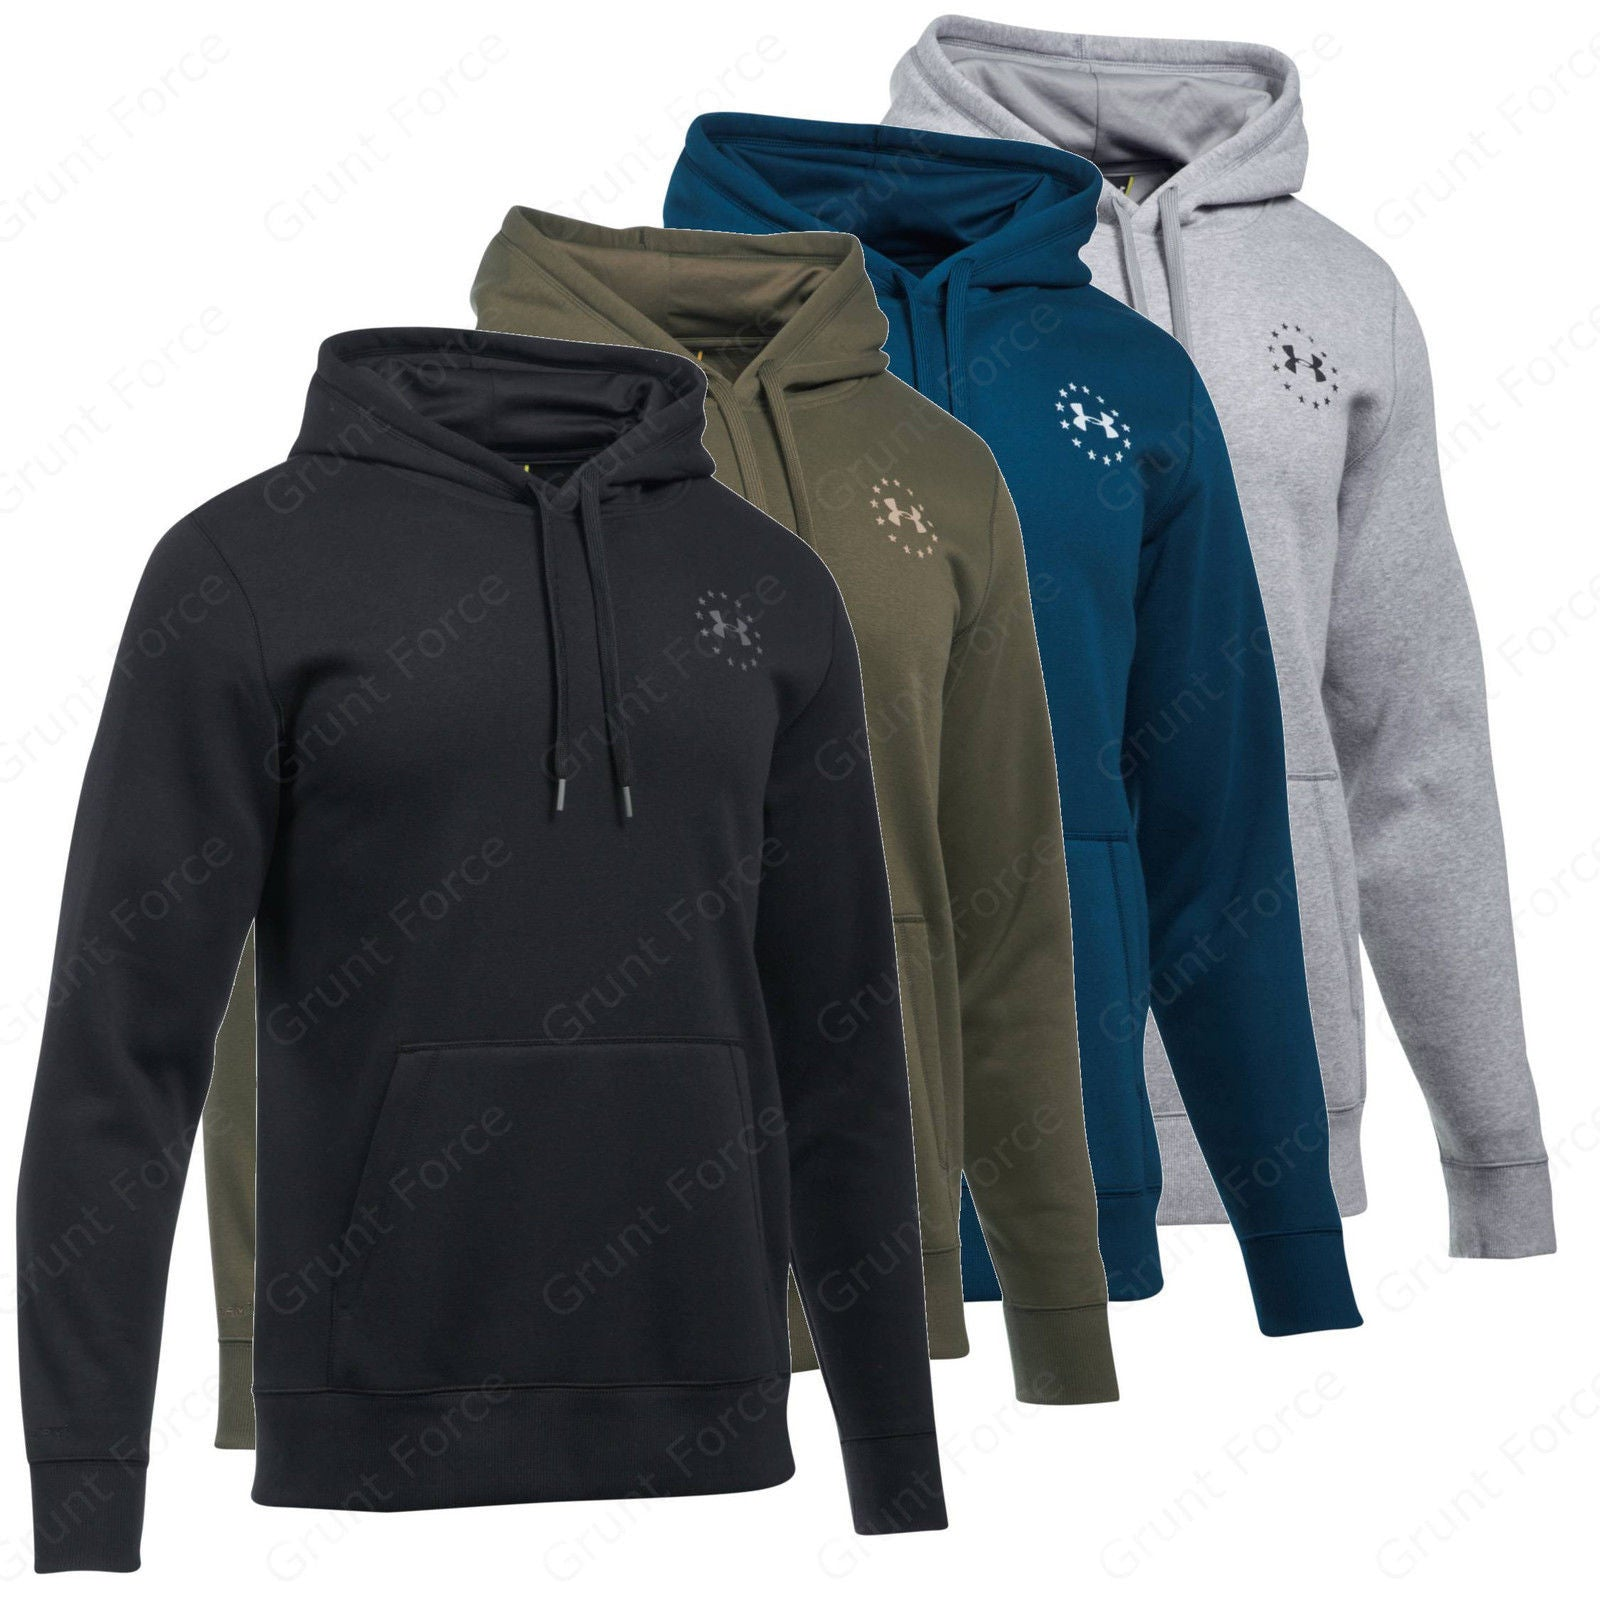 e4d6c49b149 Under Armour Men s Sweatshirts - UA Freedom Flag Rival Tactical Hoodie.